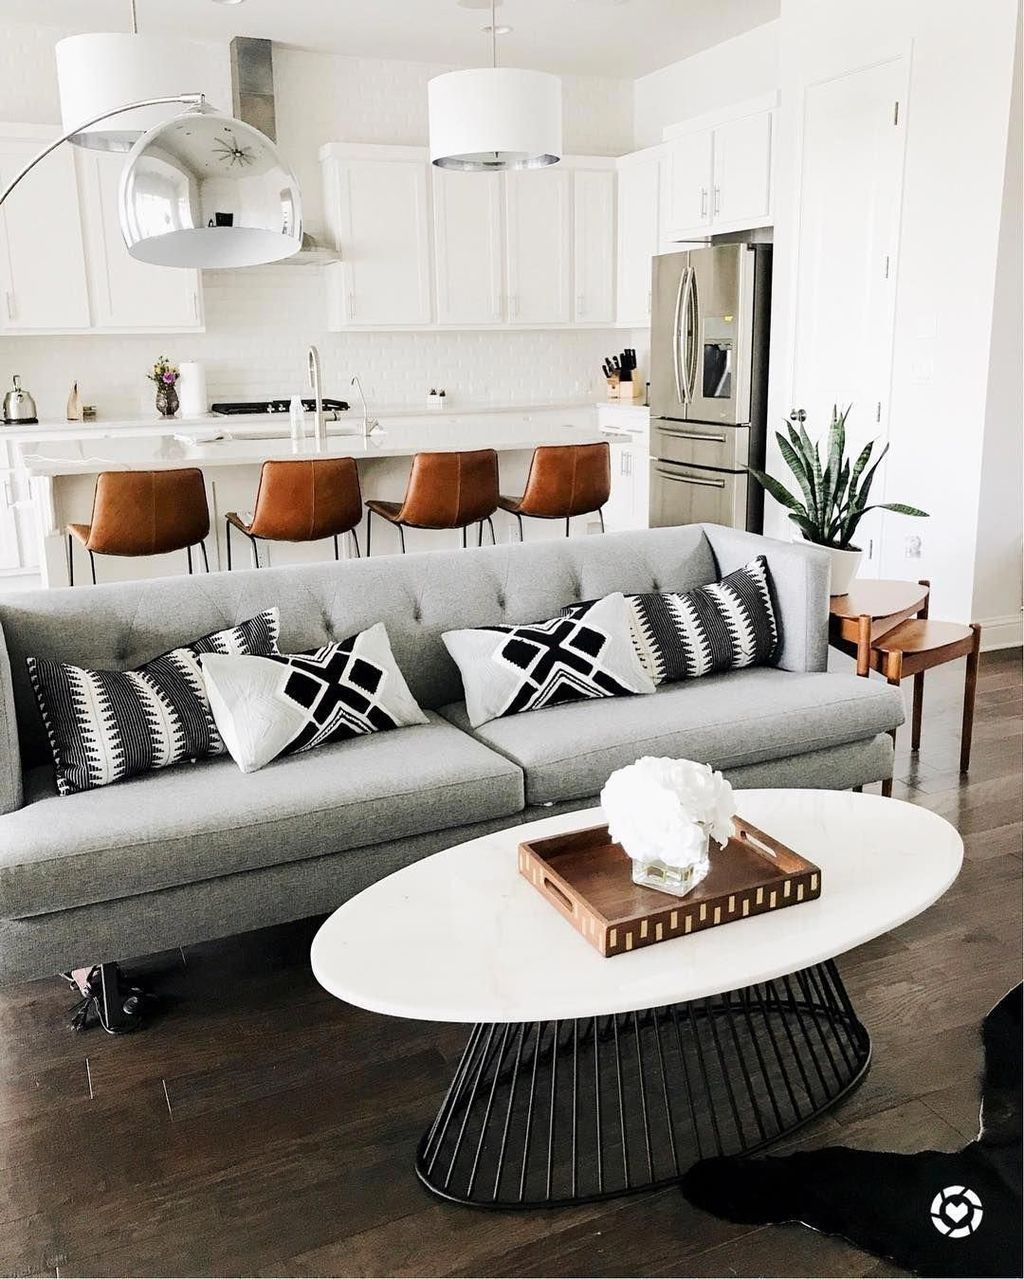 Adding Just A Touch Of Black To A White Themed Room Provides A Focal Point Everyon Black And White Living Room Apartment Living Room Design Living Room Grey